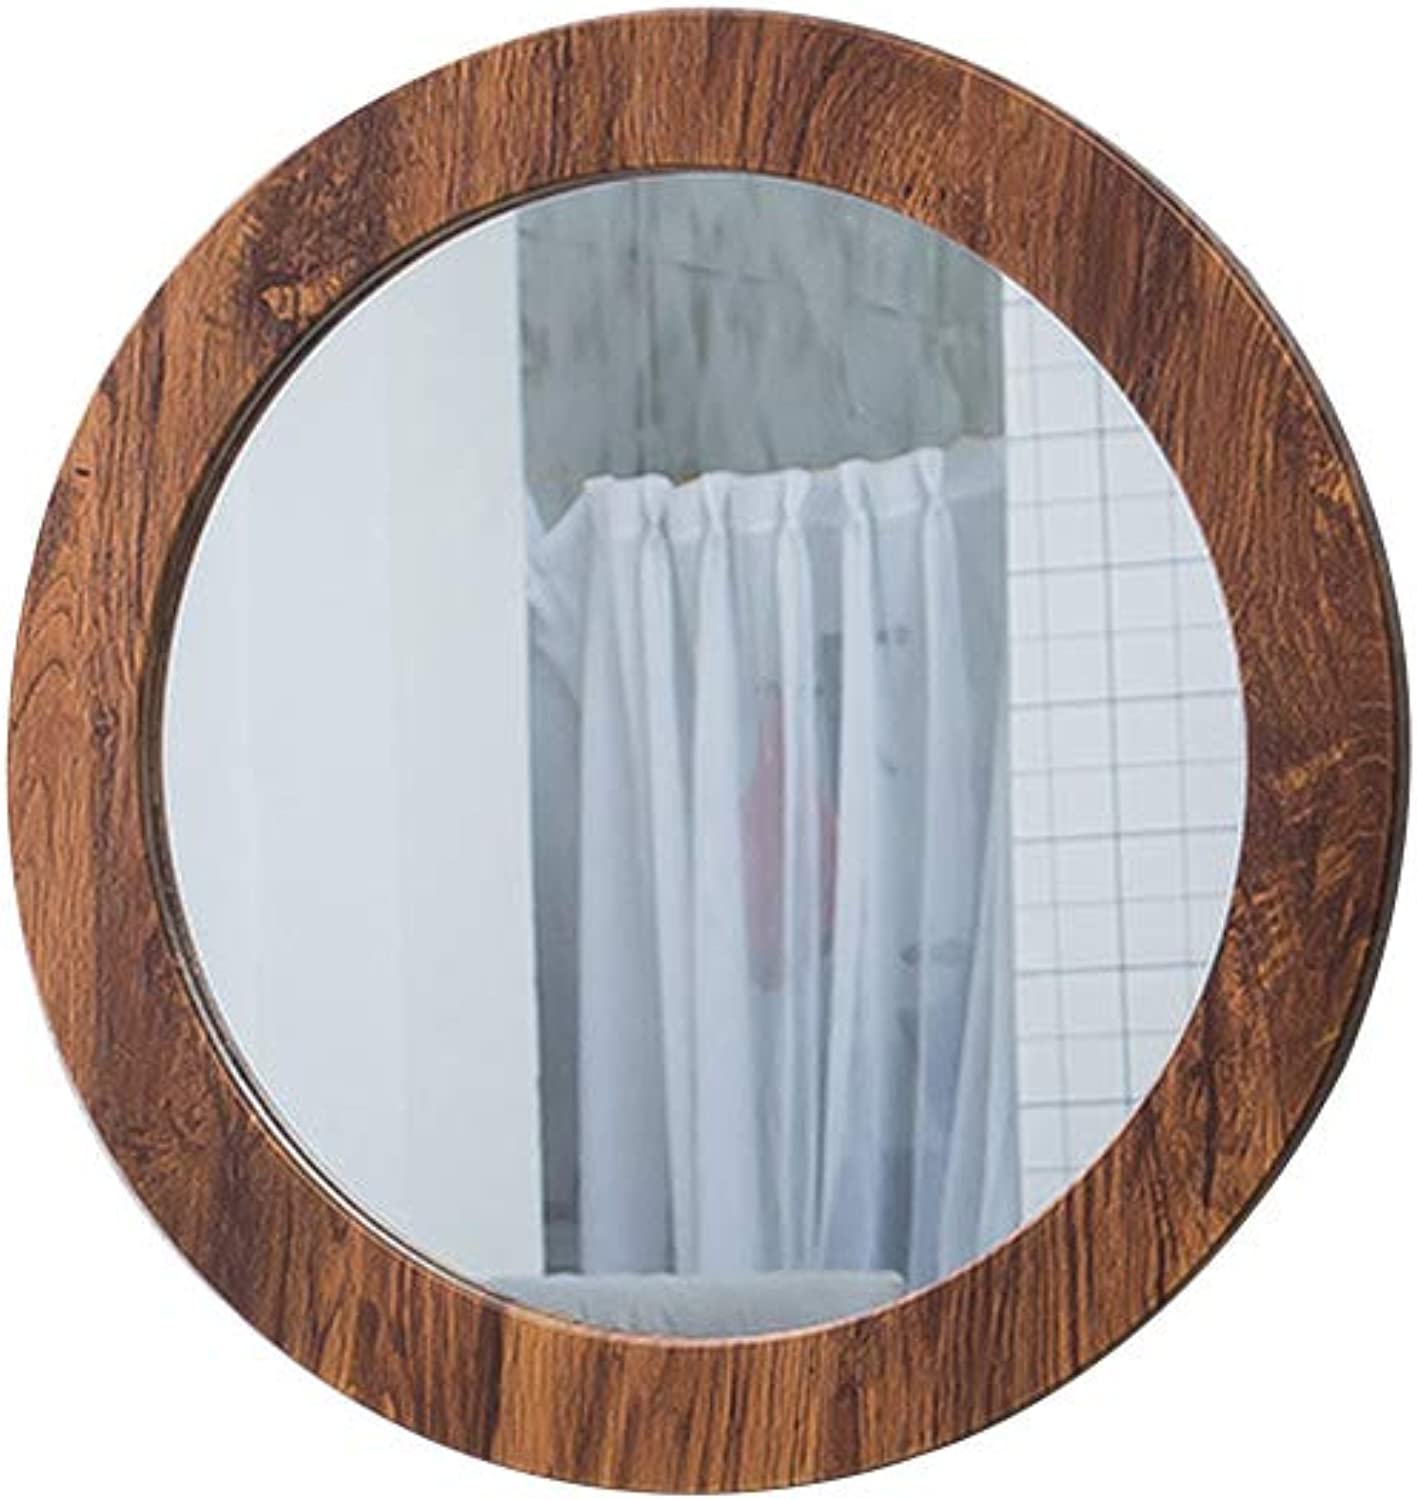 Bathroom Mirror Wall-Mounted Round Mirror Suitable for Bedroom Hotel Corridor with Border, Diameter 16 20 24 Inches